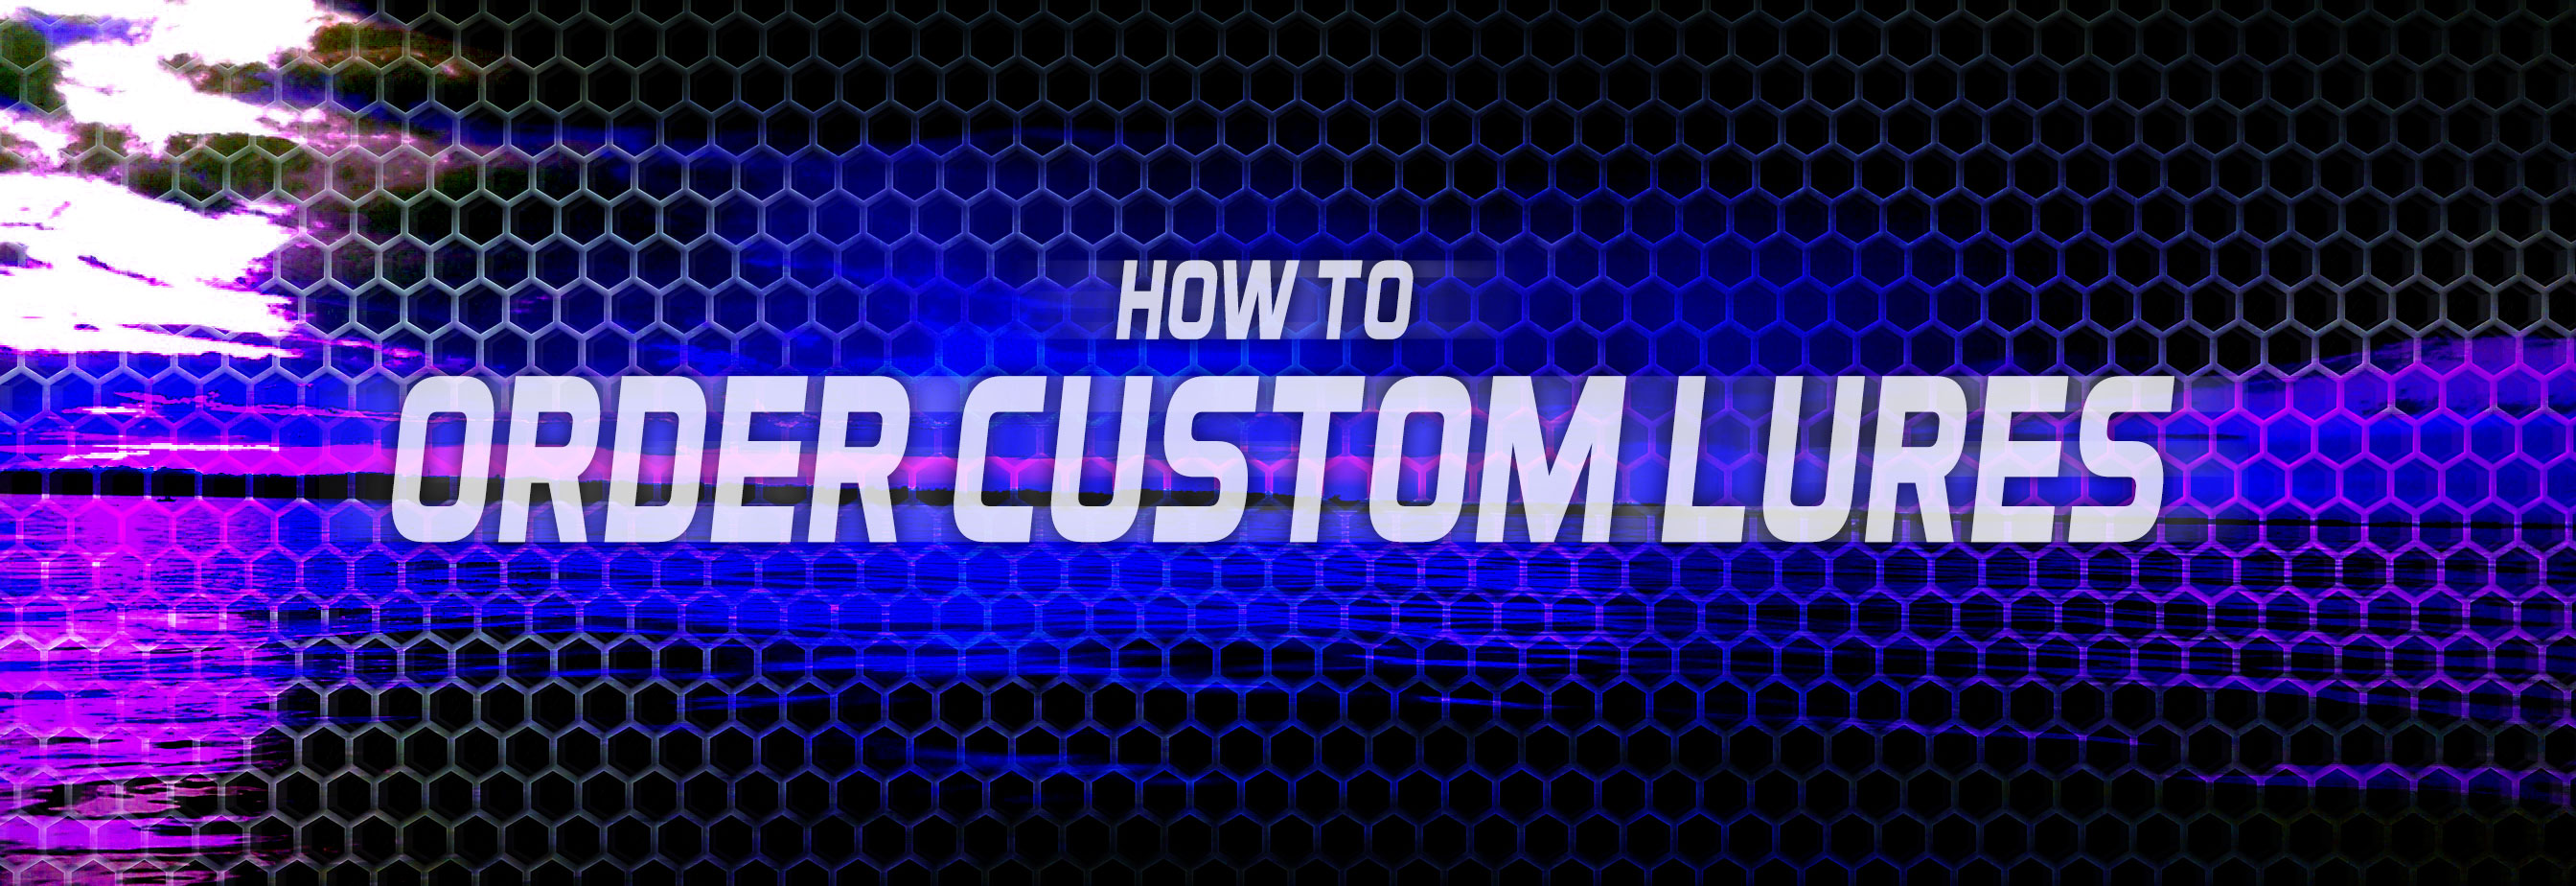 How to Order Custom Lures